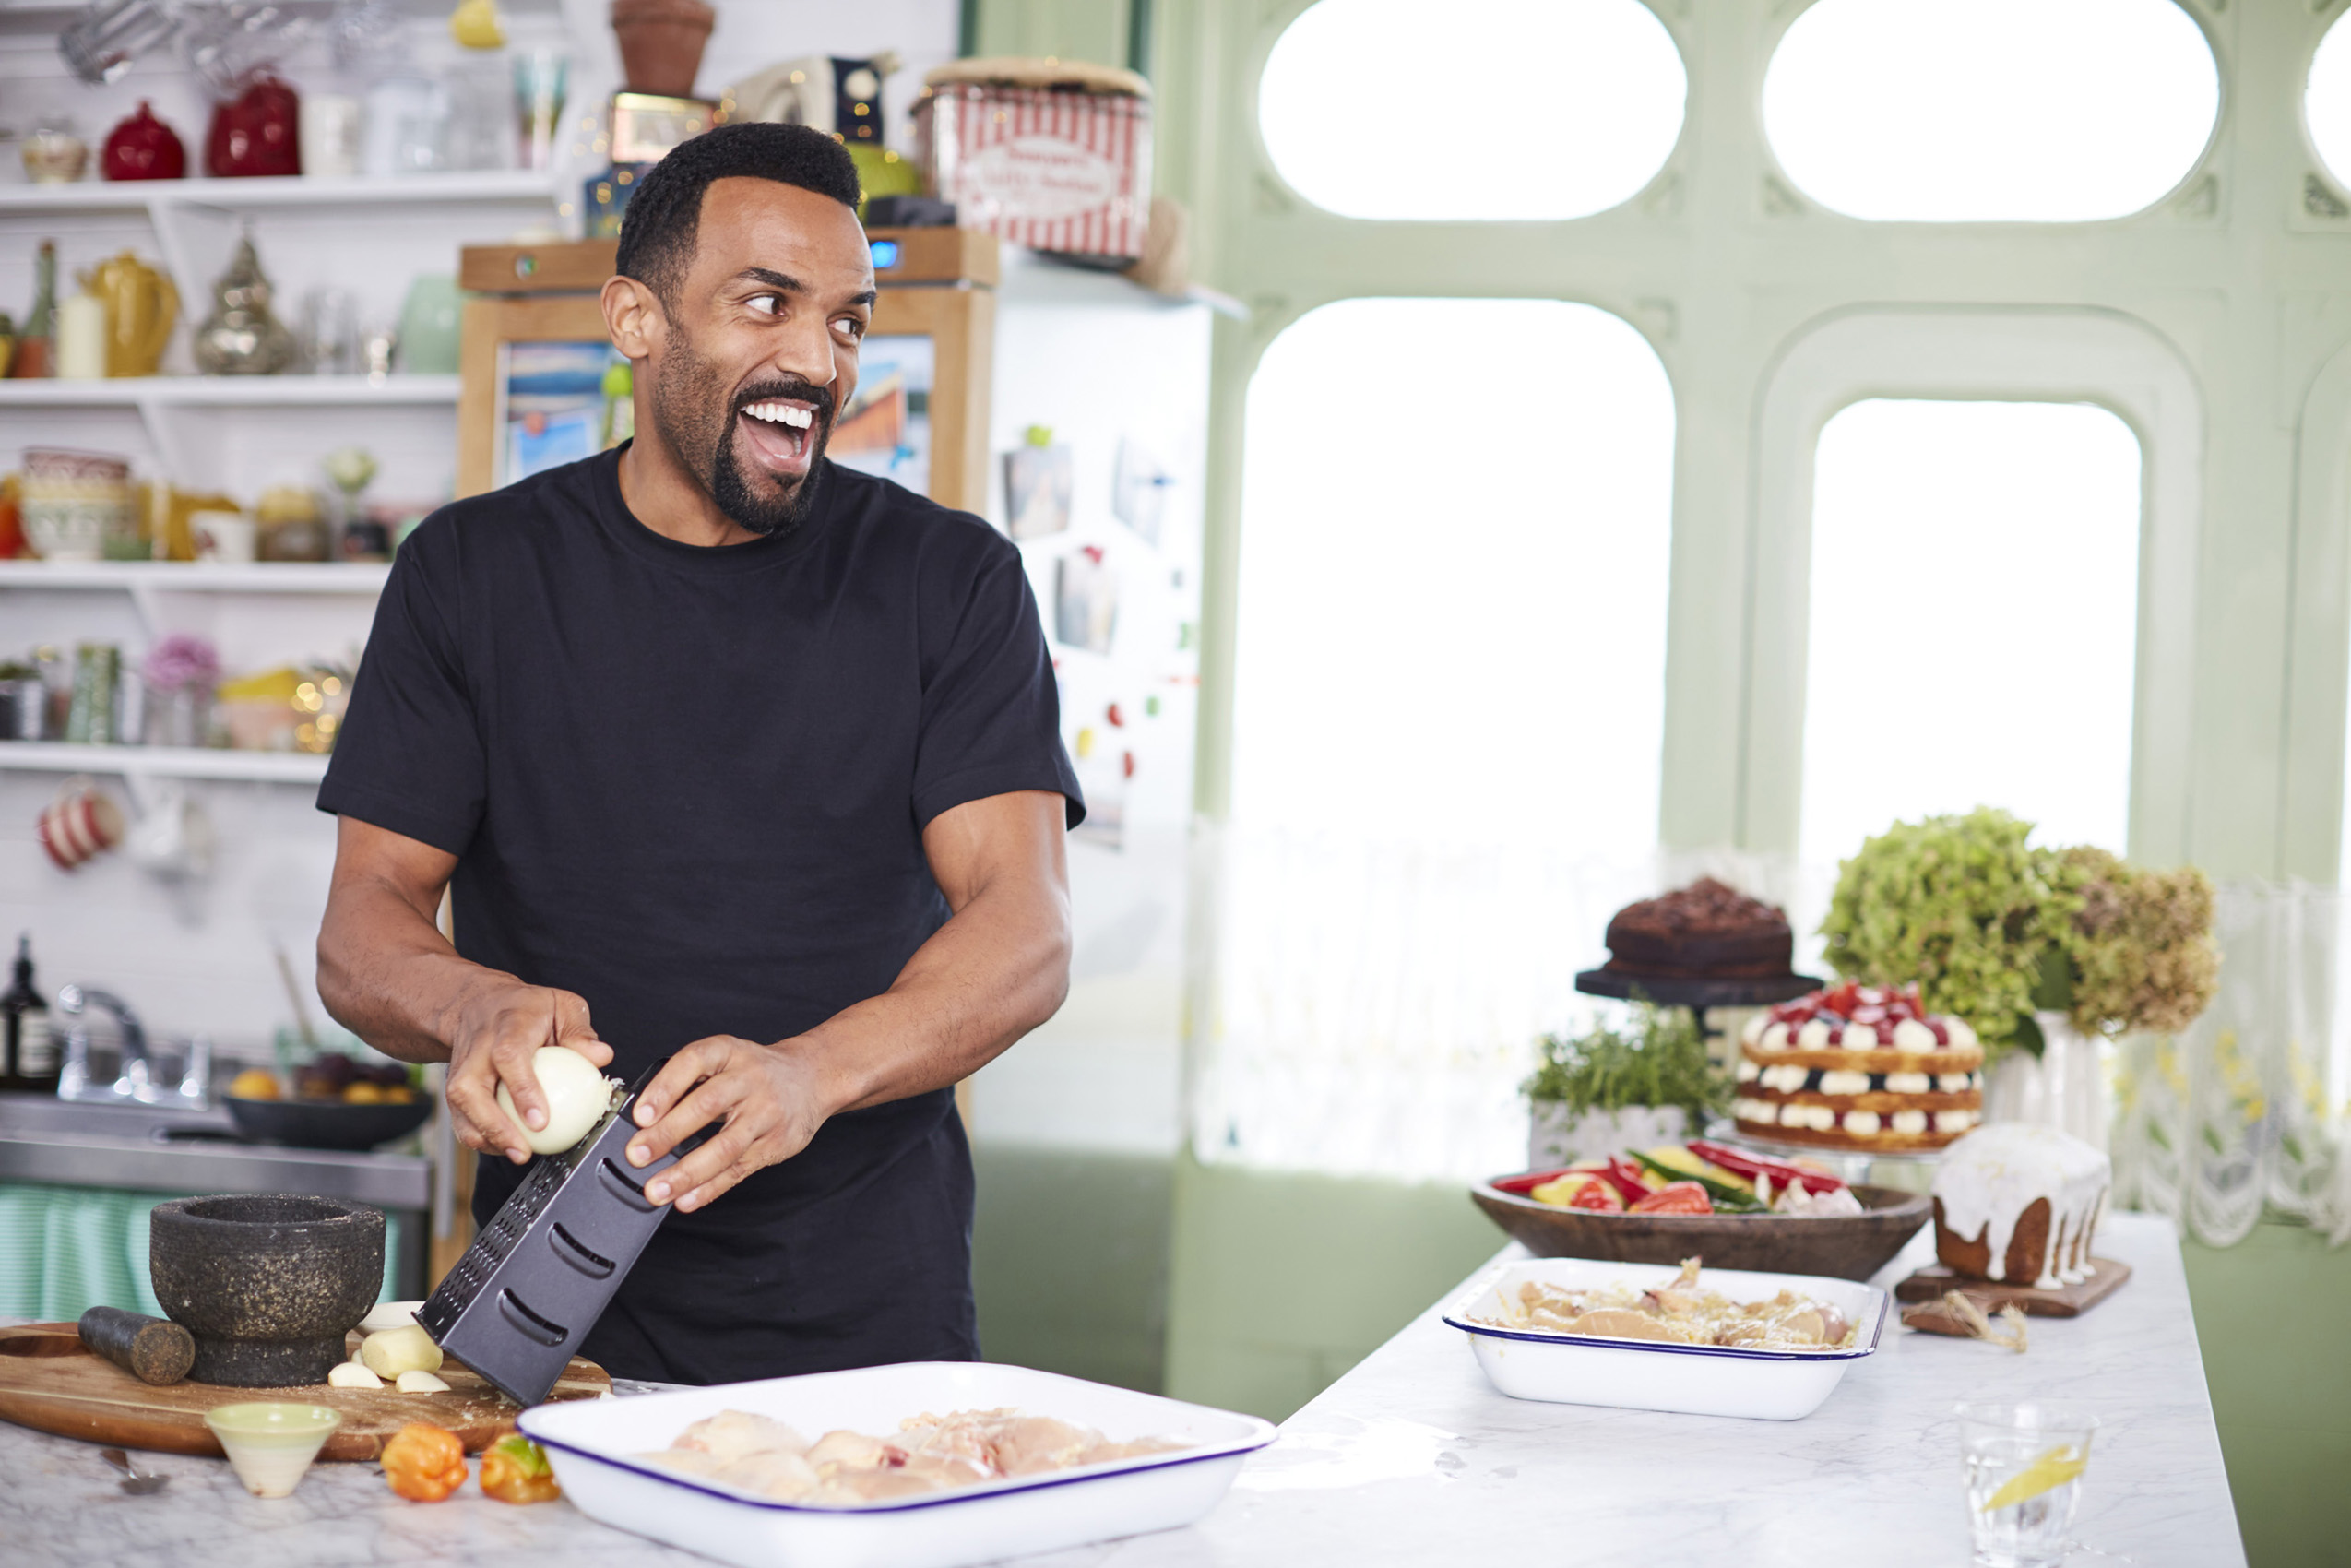 SteveRyan_Photographer_Portraits_People_FridaynightFeast_JamieOliver_CraigDavid_95